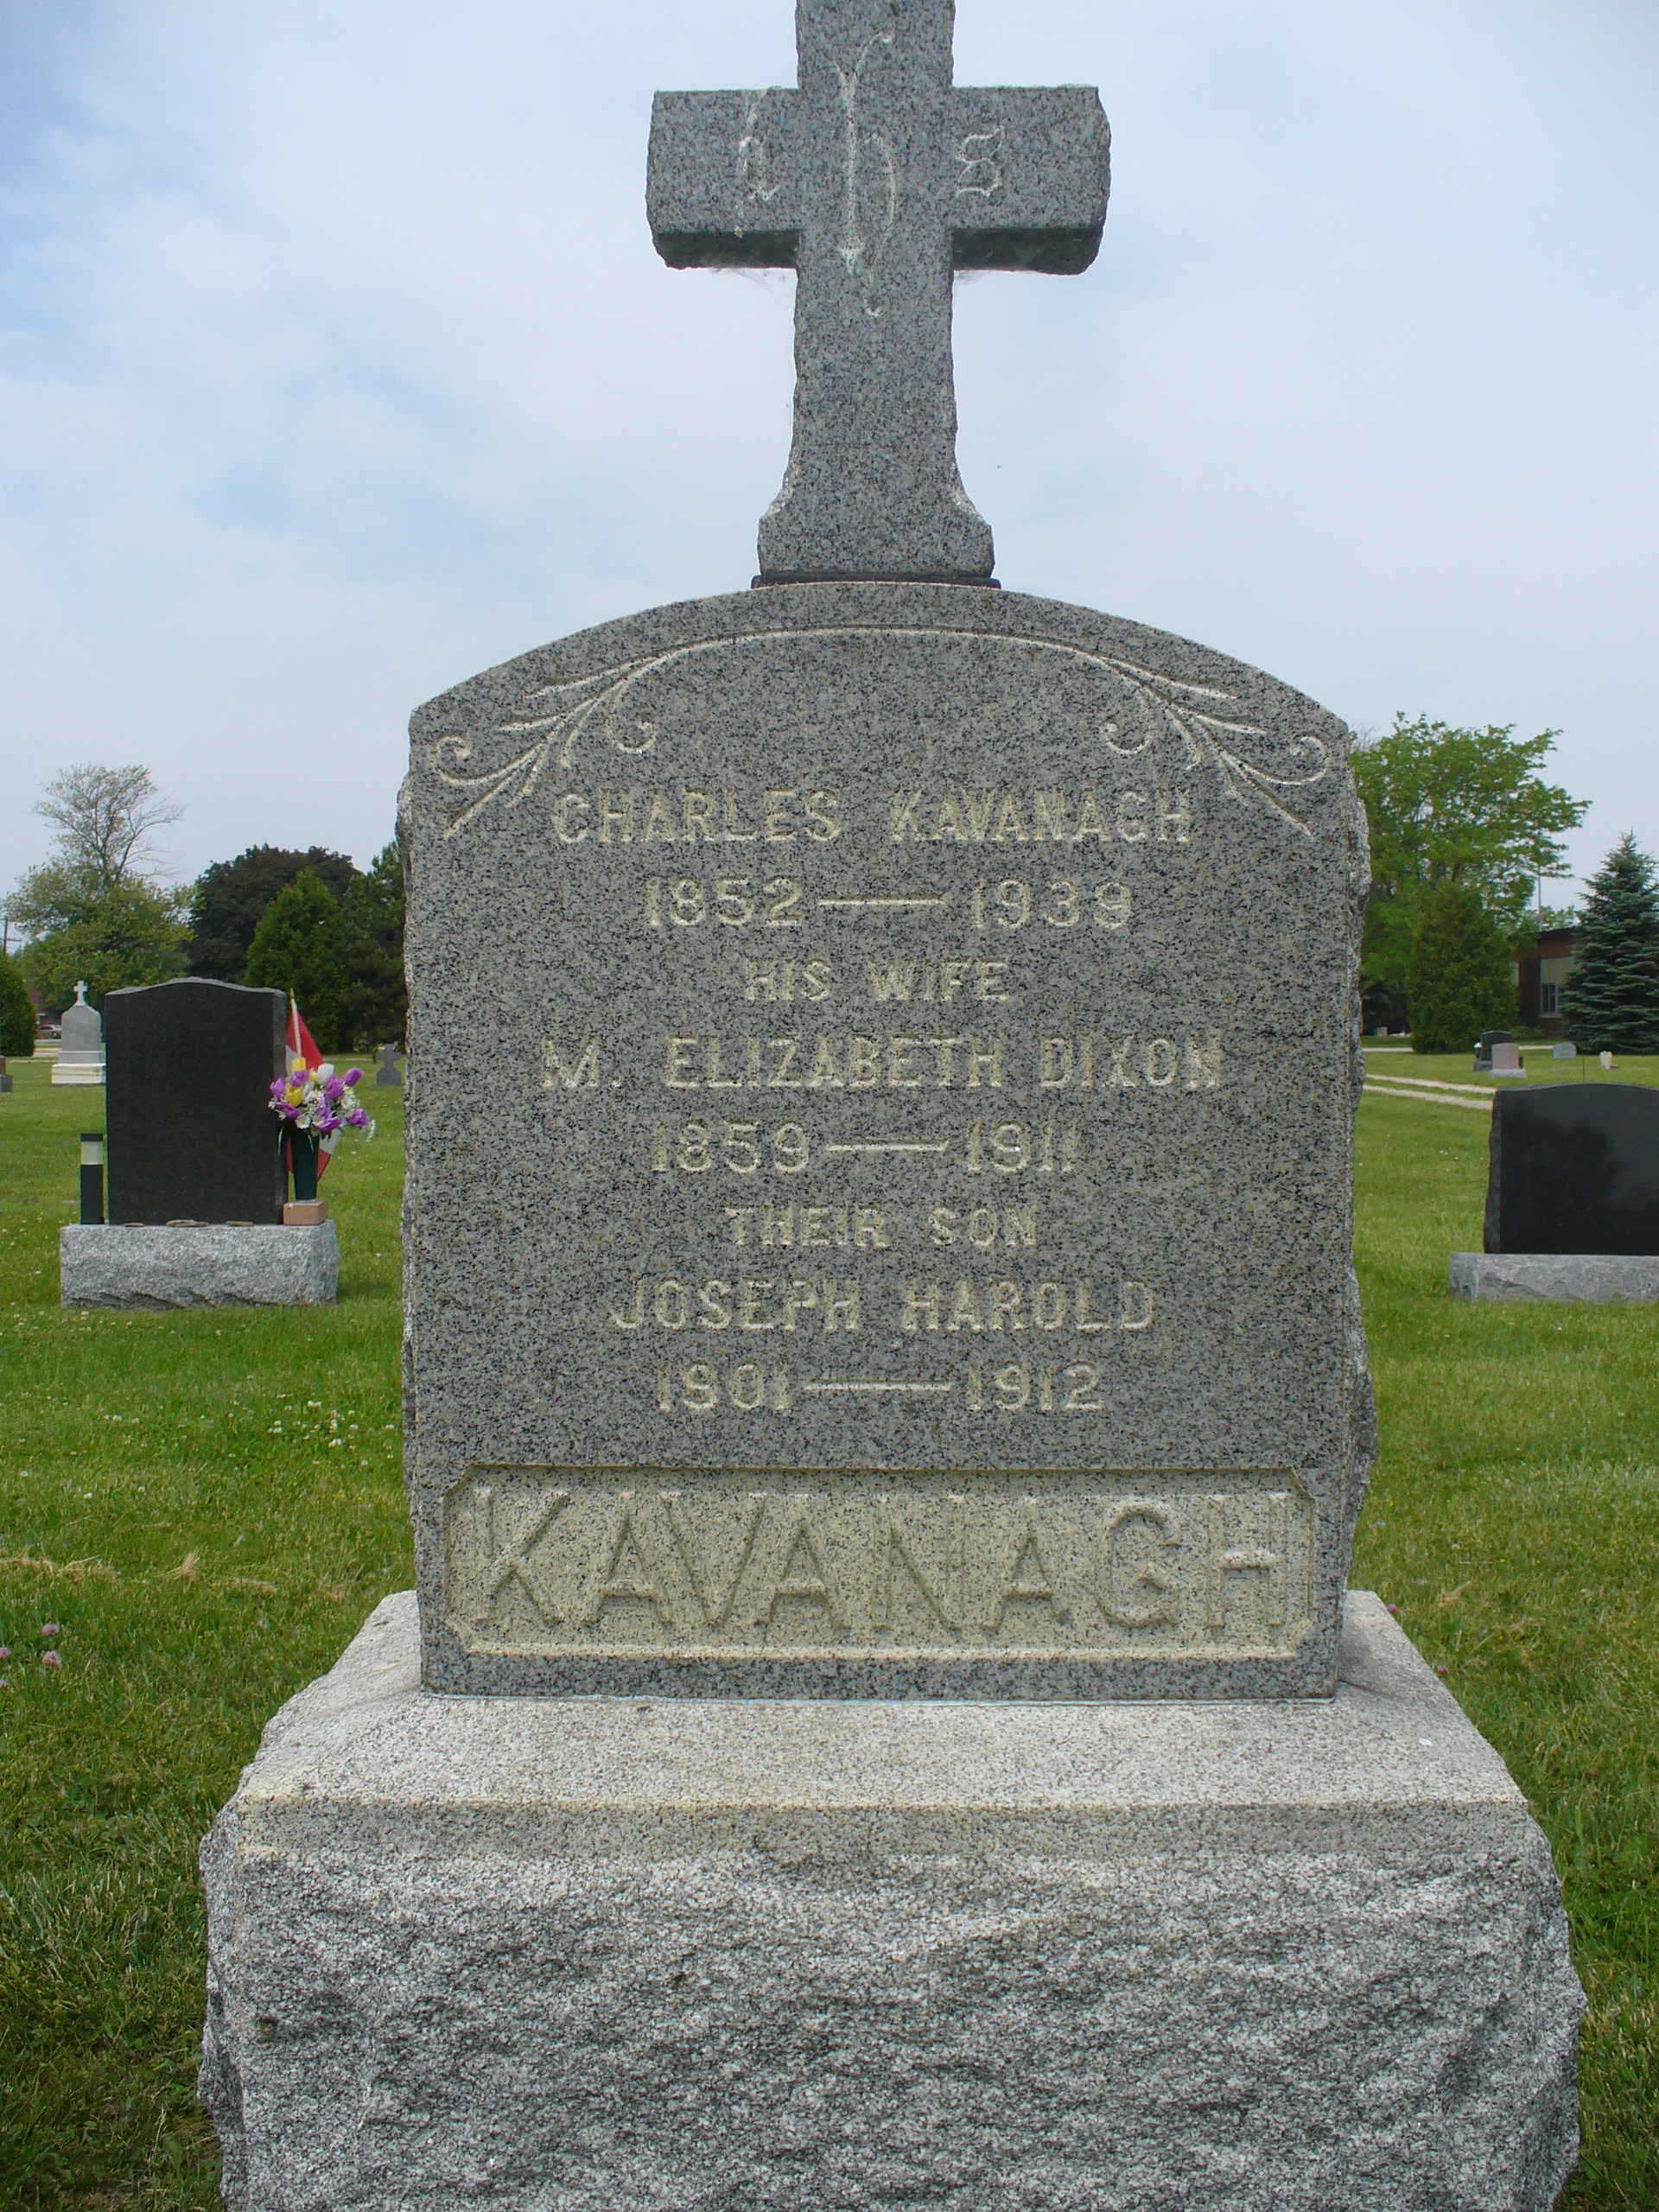 Charles Amonett Kavanaugh